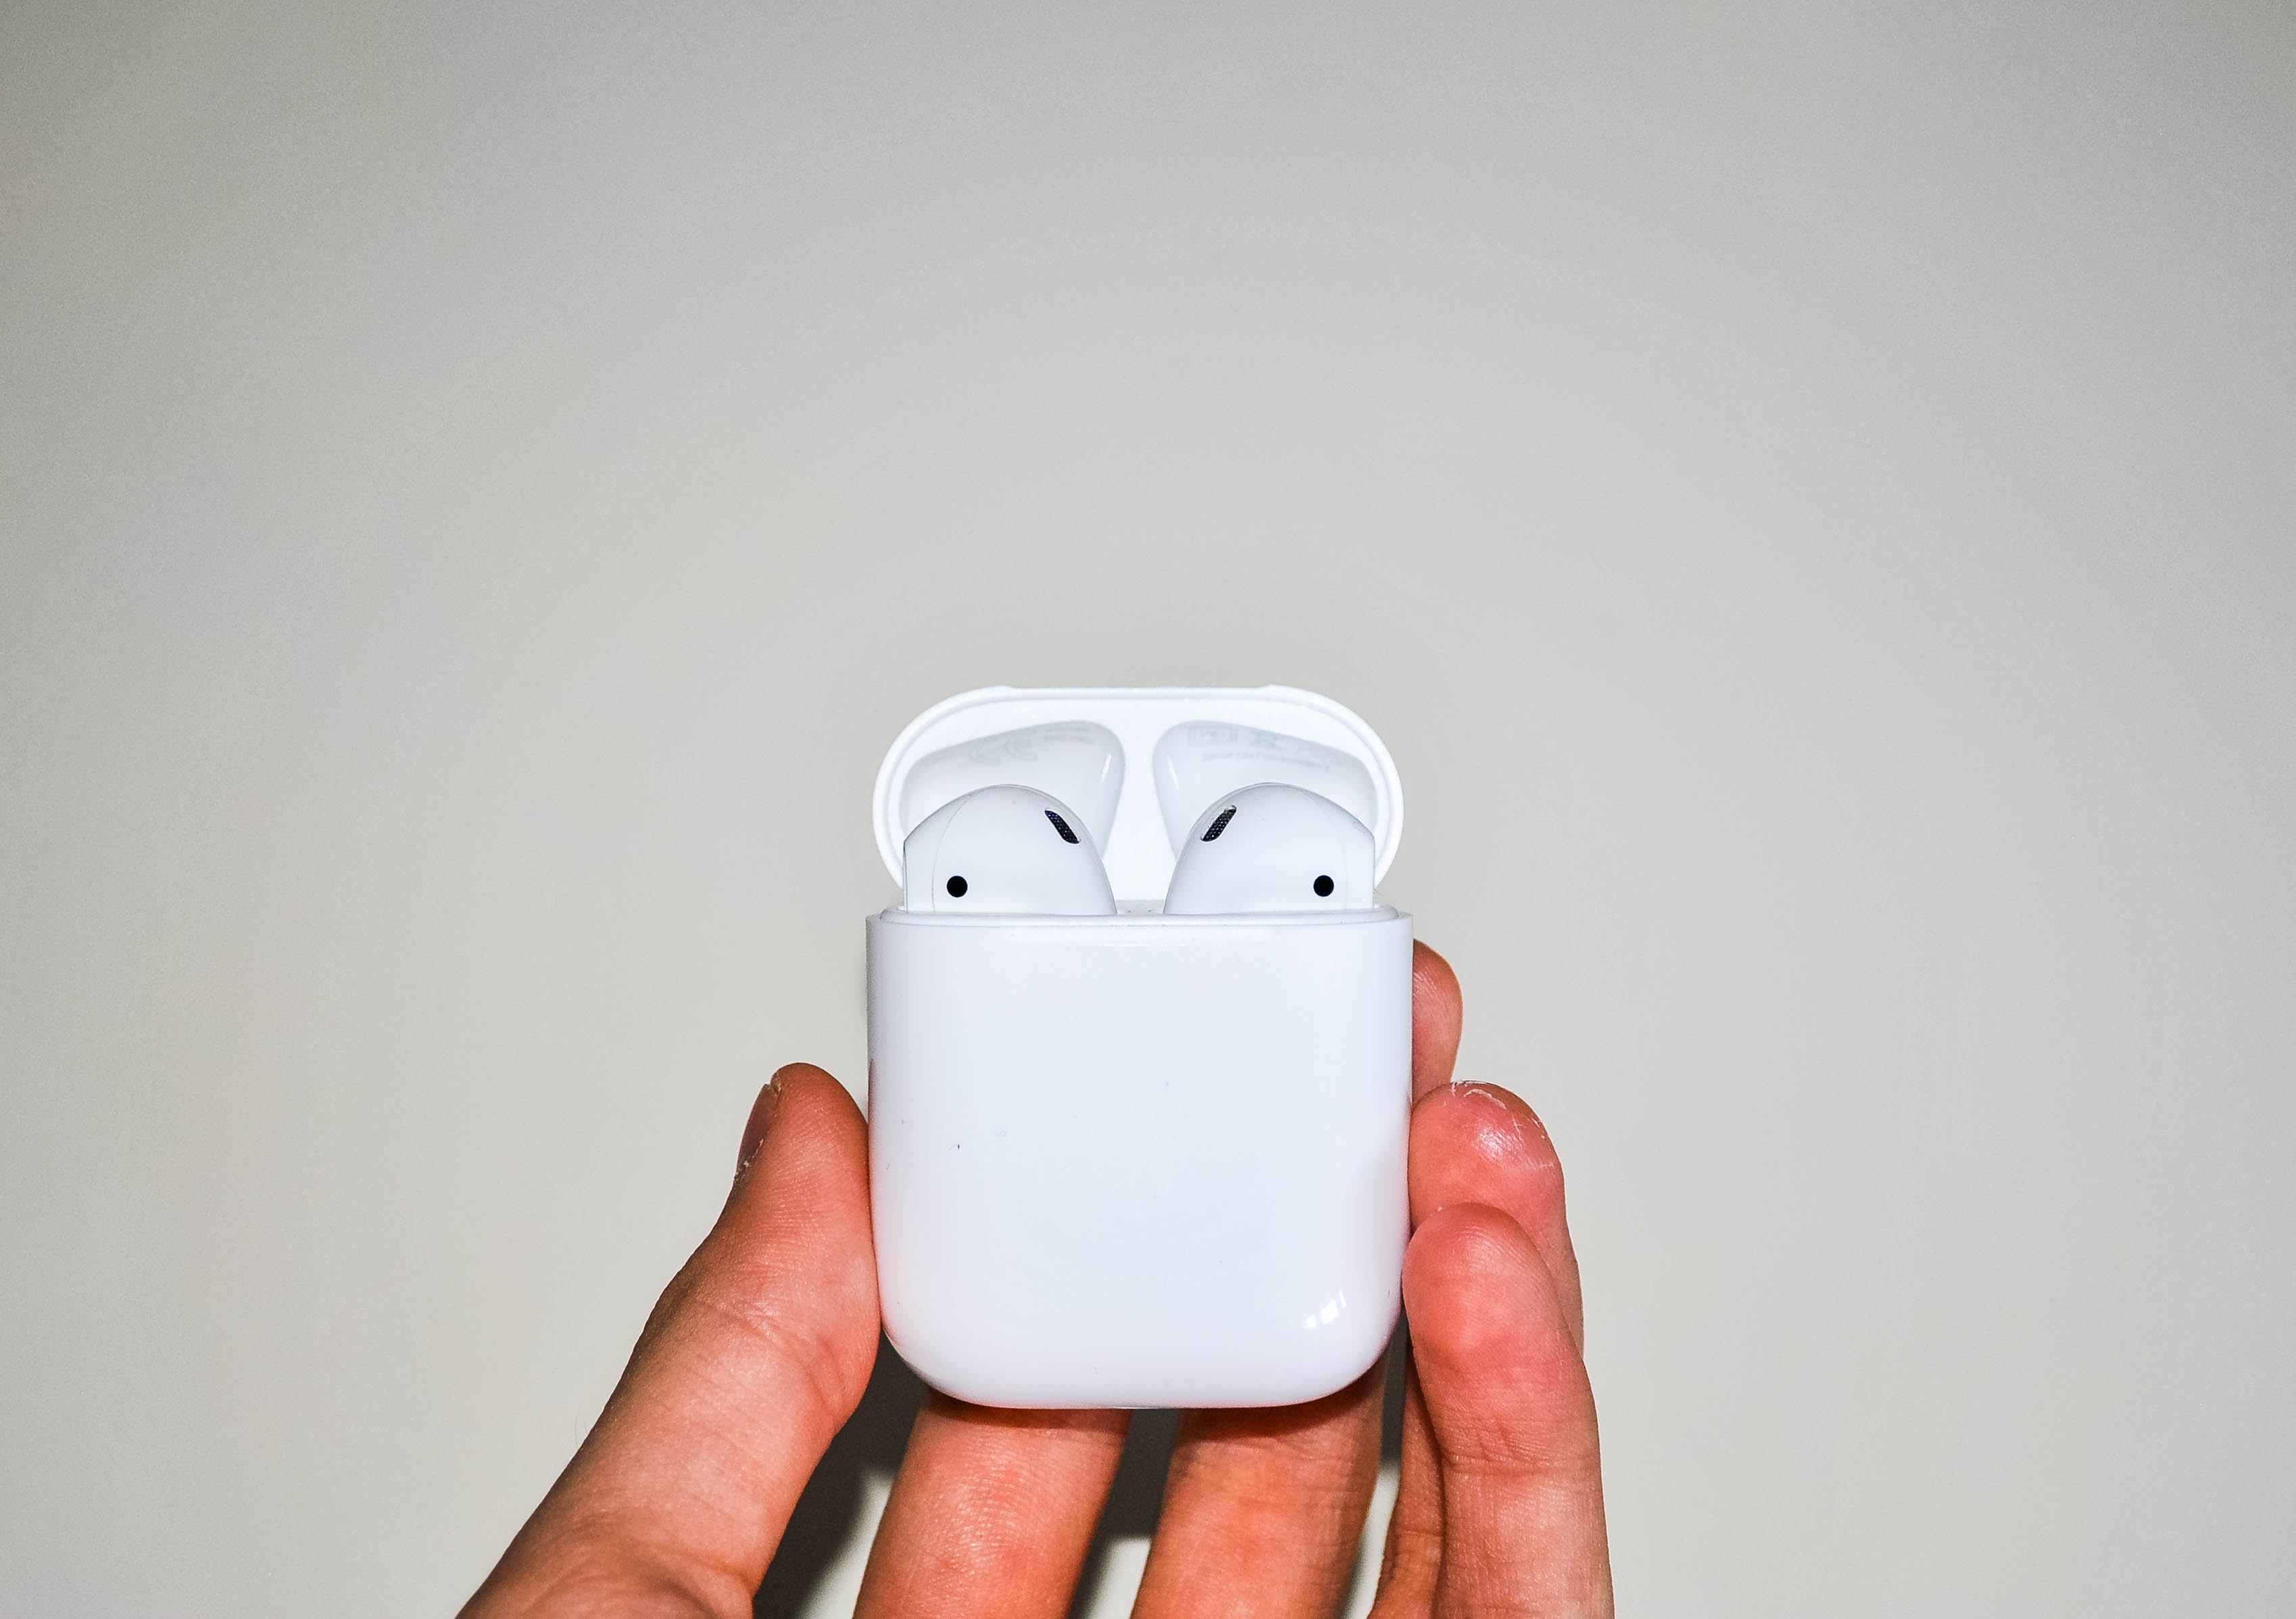 apple-airpods2-gaget